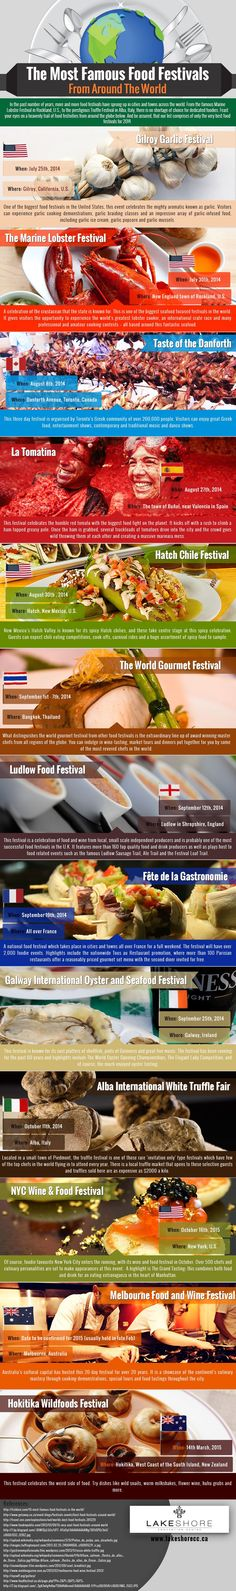 Famous Food Festivals from around the world.